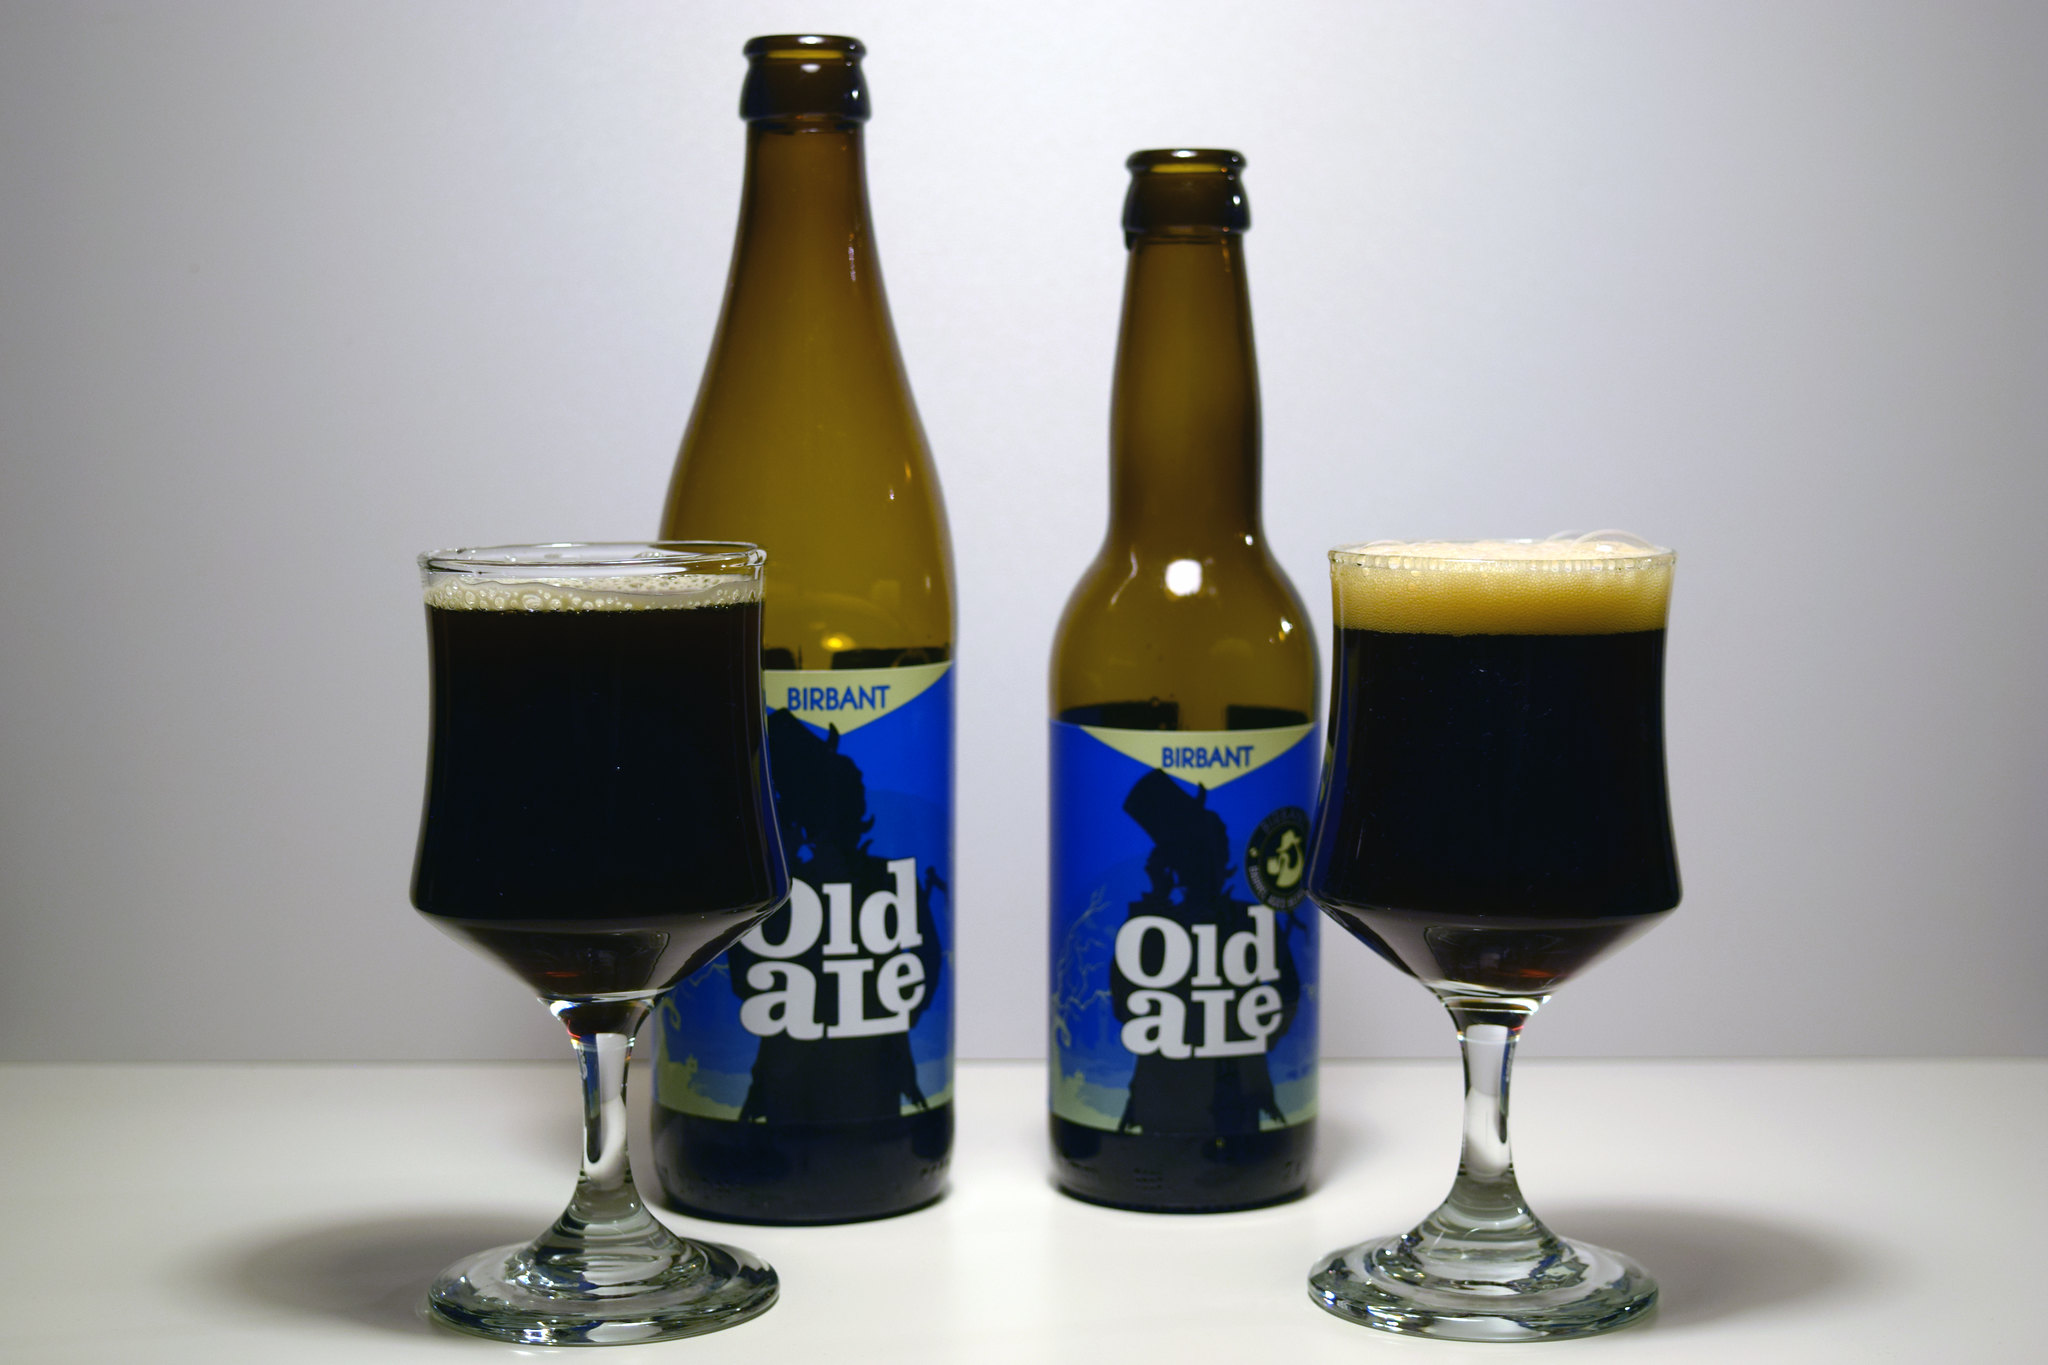 old ale birbant vs